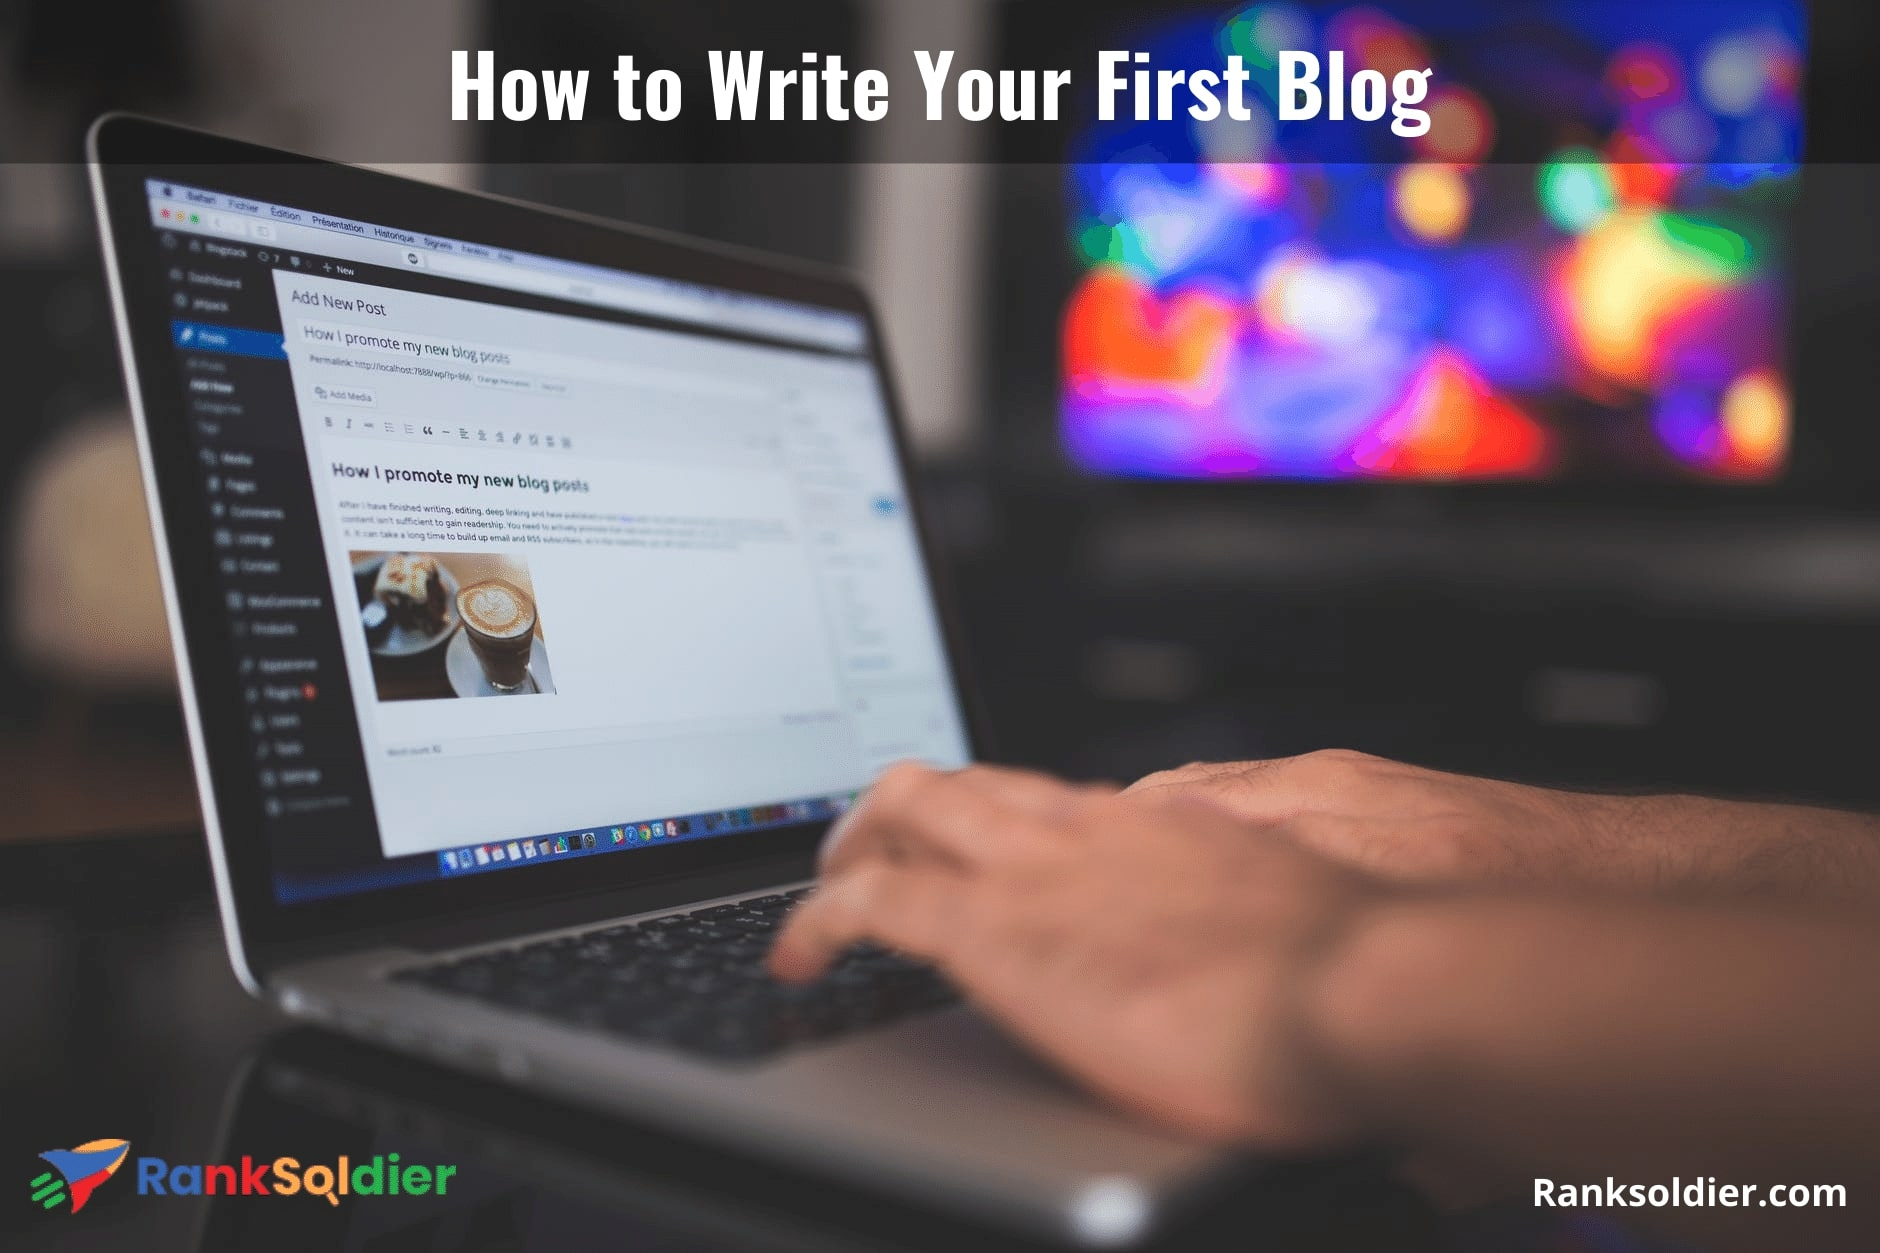 How to Write Your First Blog